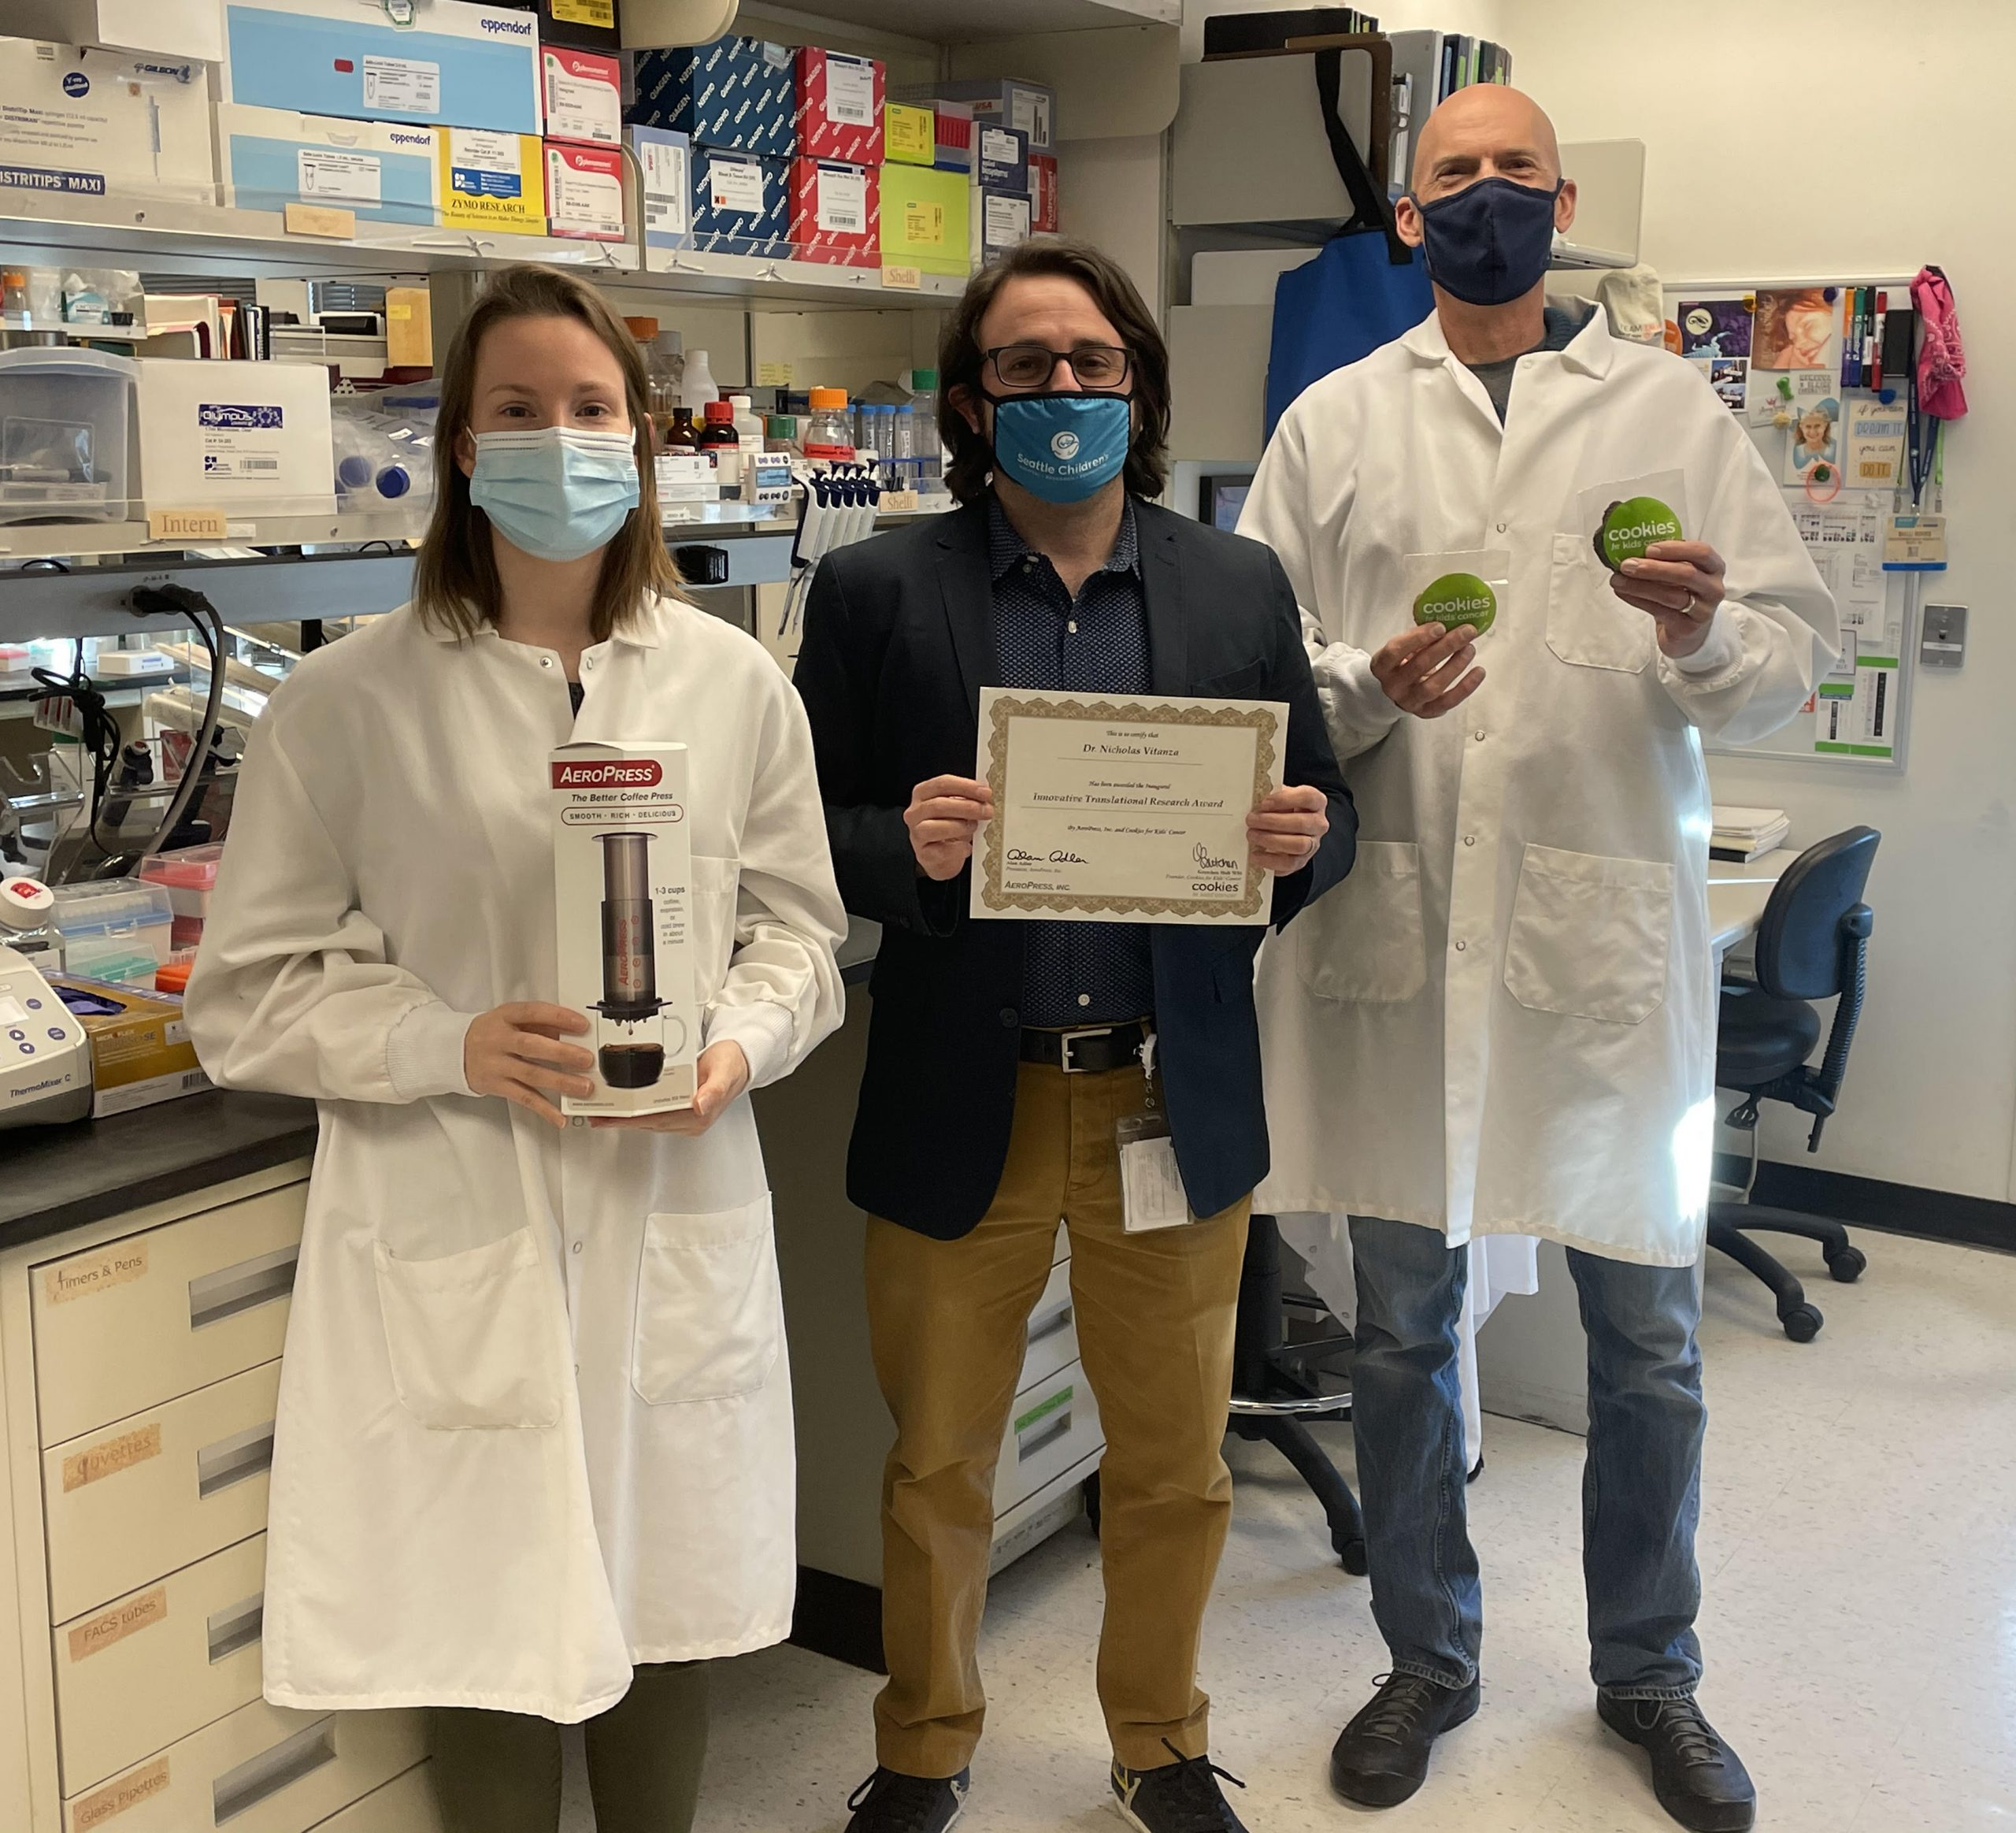 AeroPress, Inc. Announces Winner of $100,000 Cookies for Kids' Cancer Innovative Translational Research Award